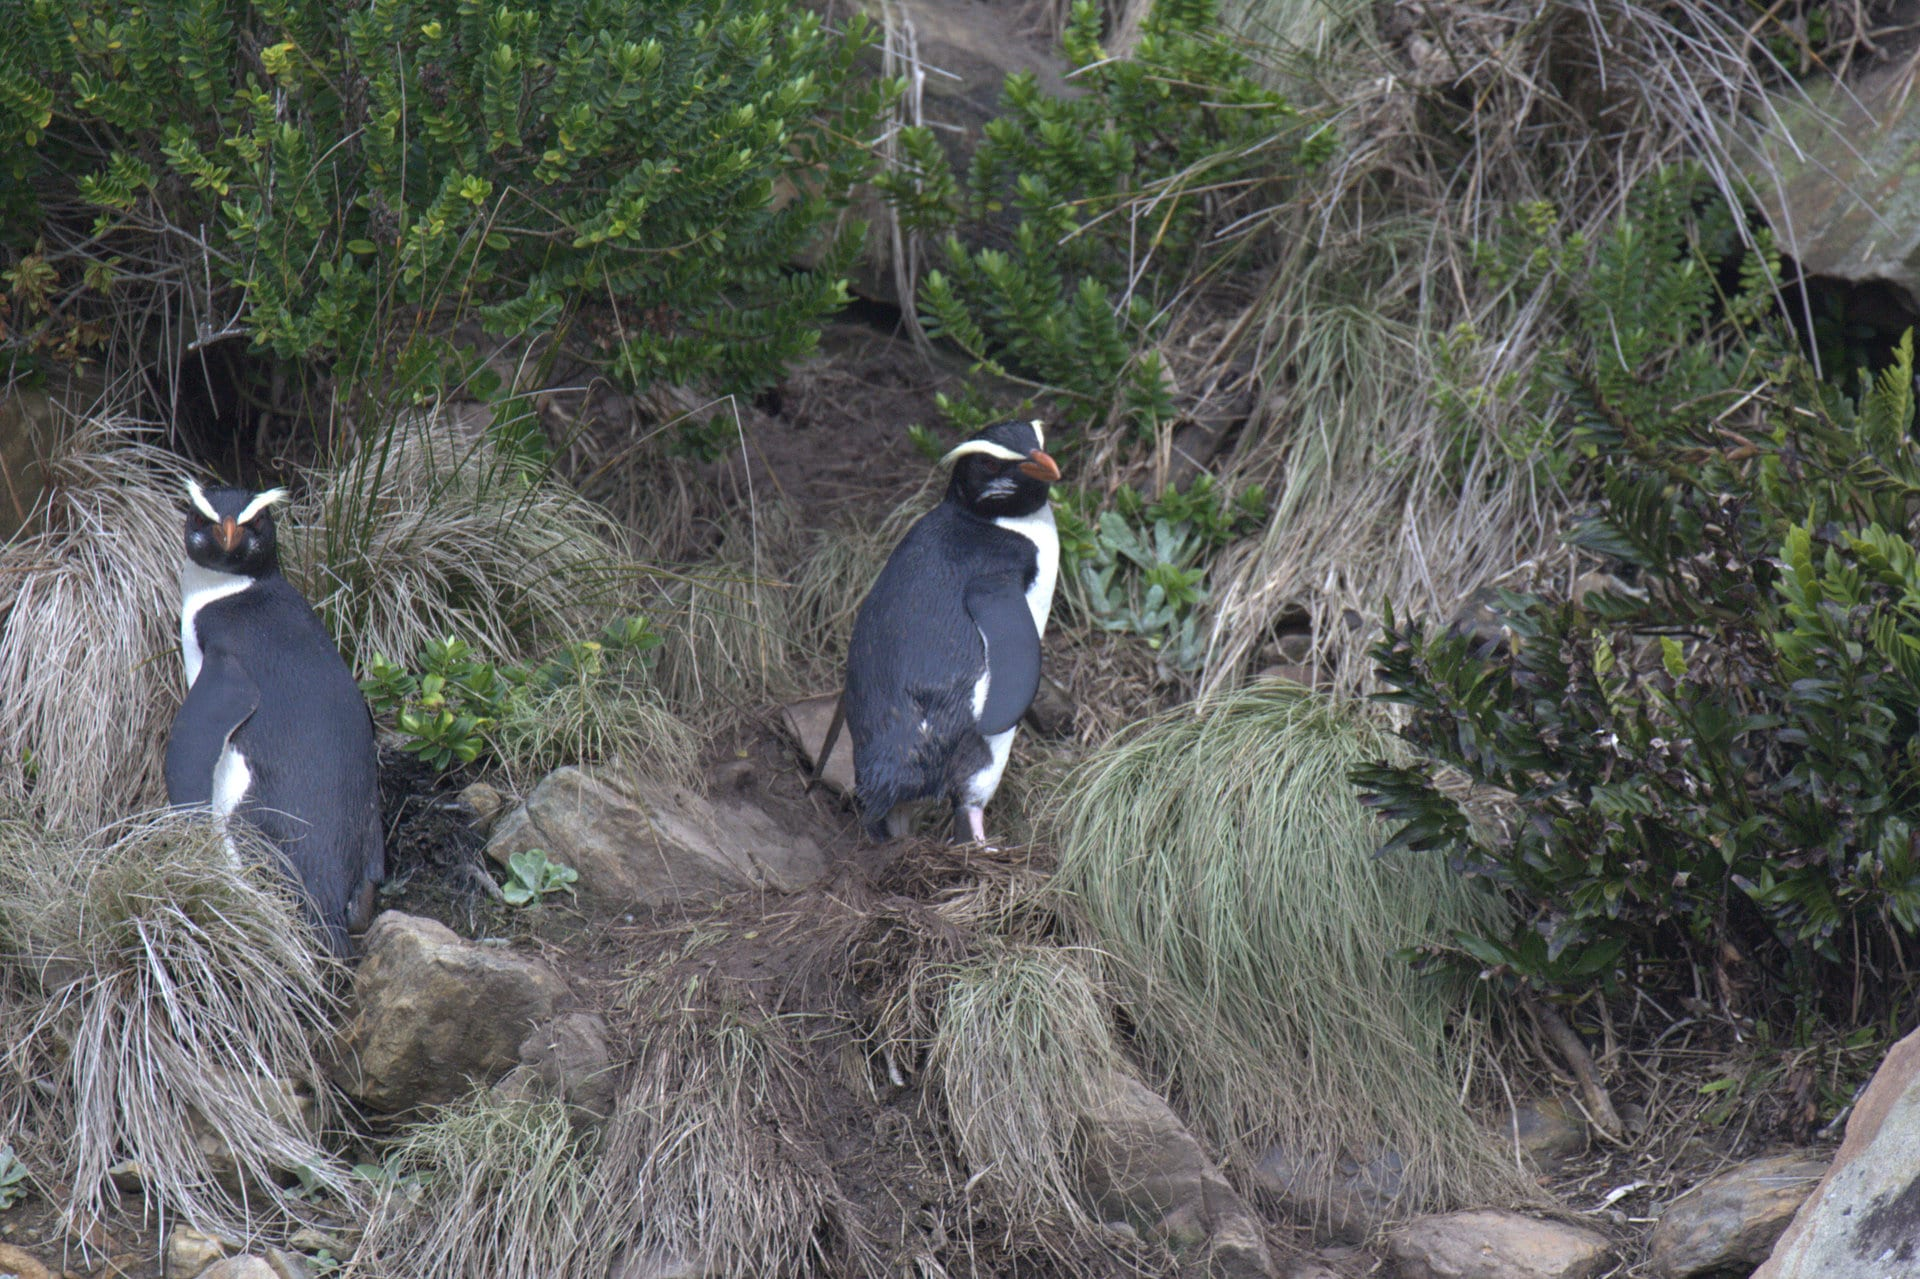 //en.wikipedia.org/wiki/Fiordland_penguin#/media/File:Fiordland_Crested_Penguin.jpg